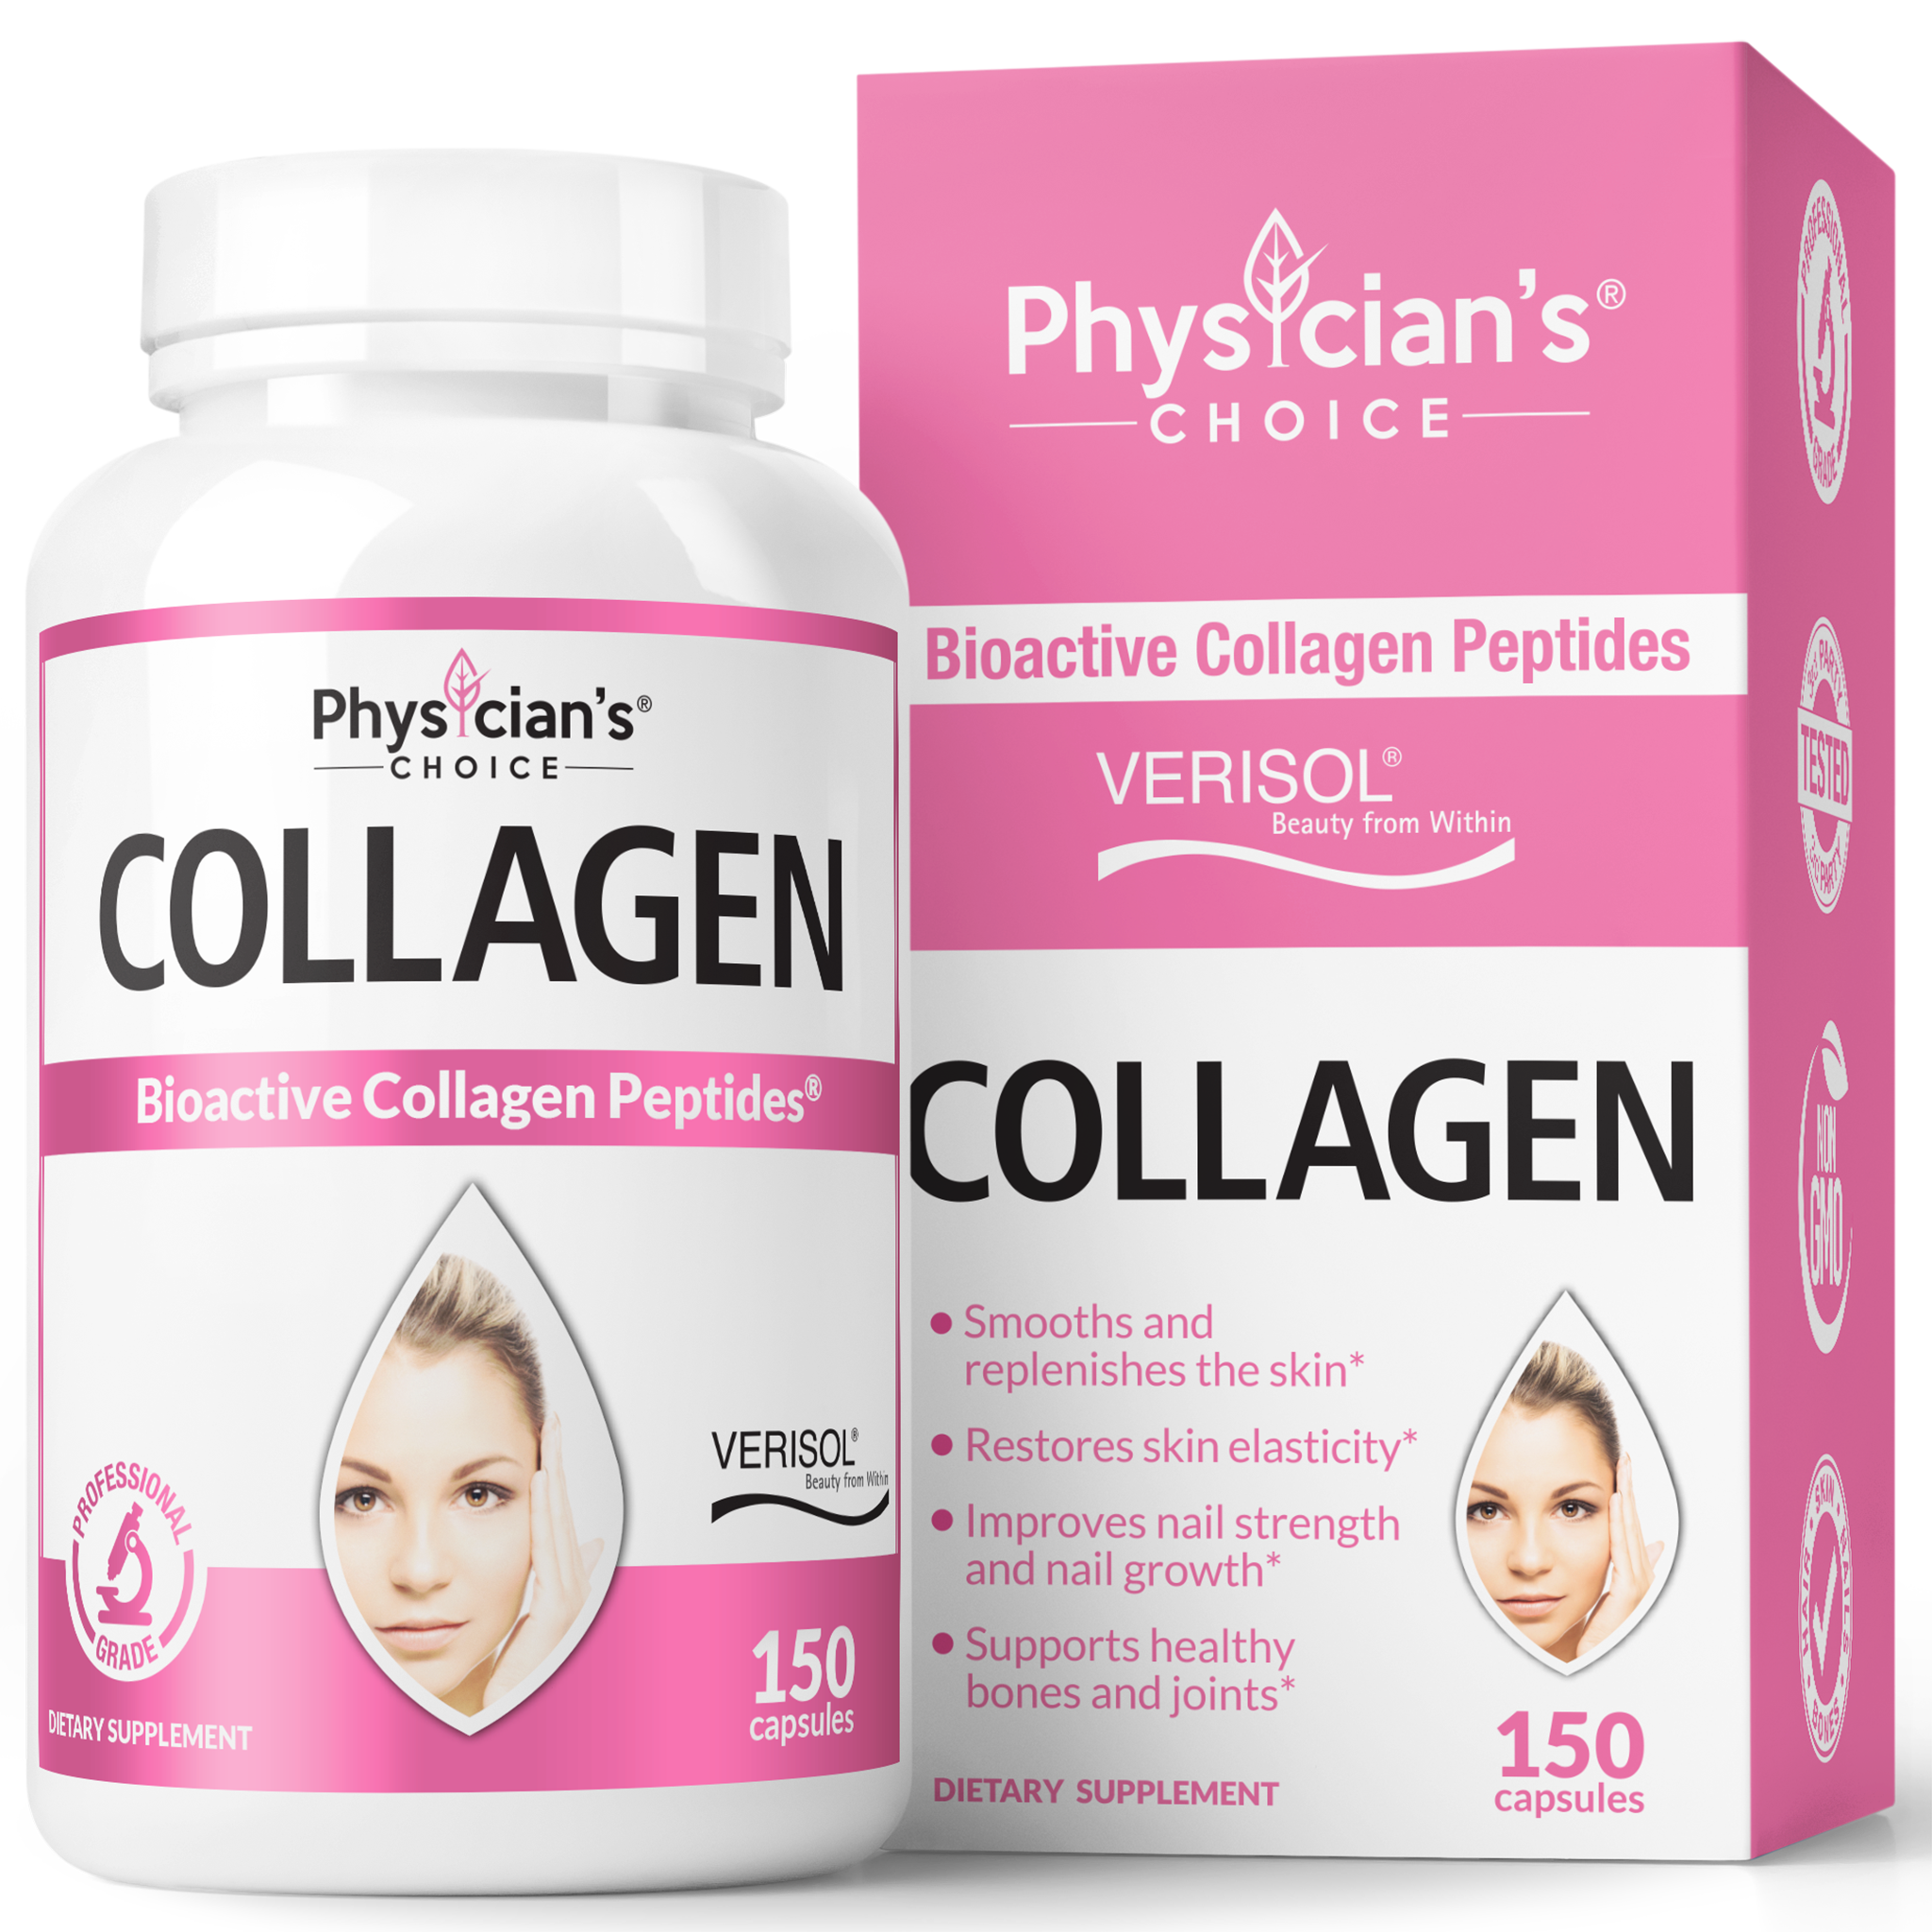 Collagen Pills from Physician's Choice